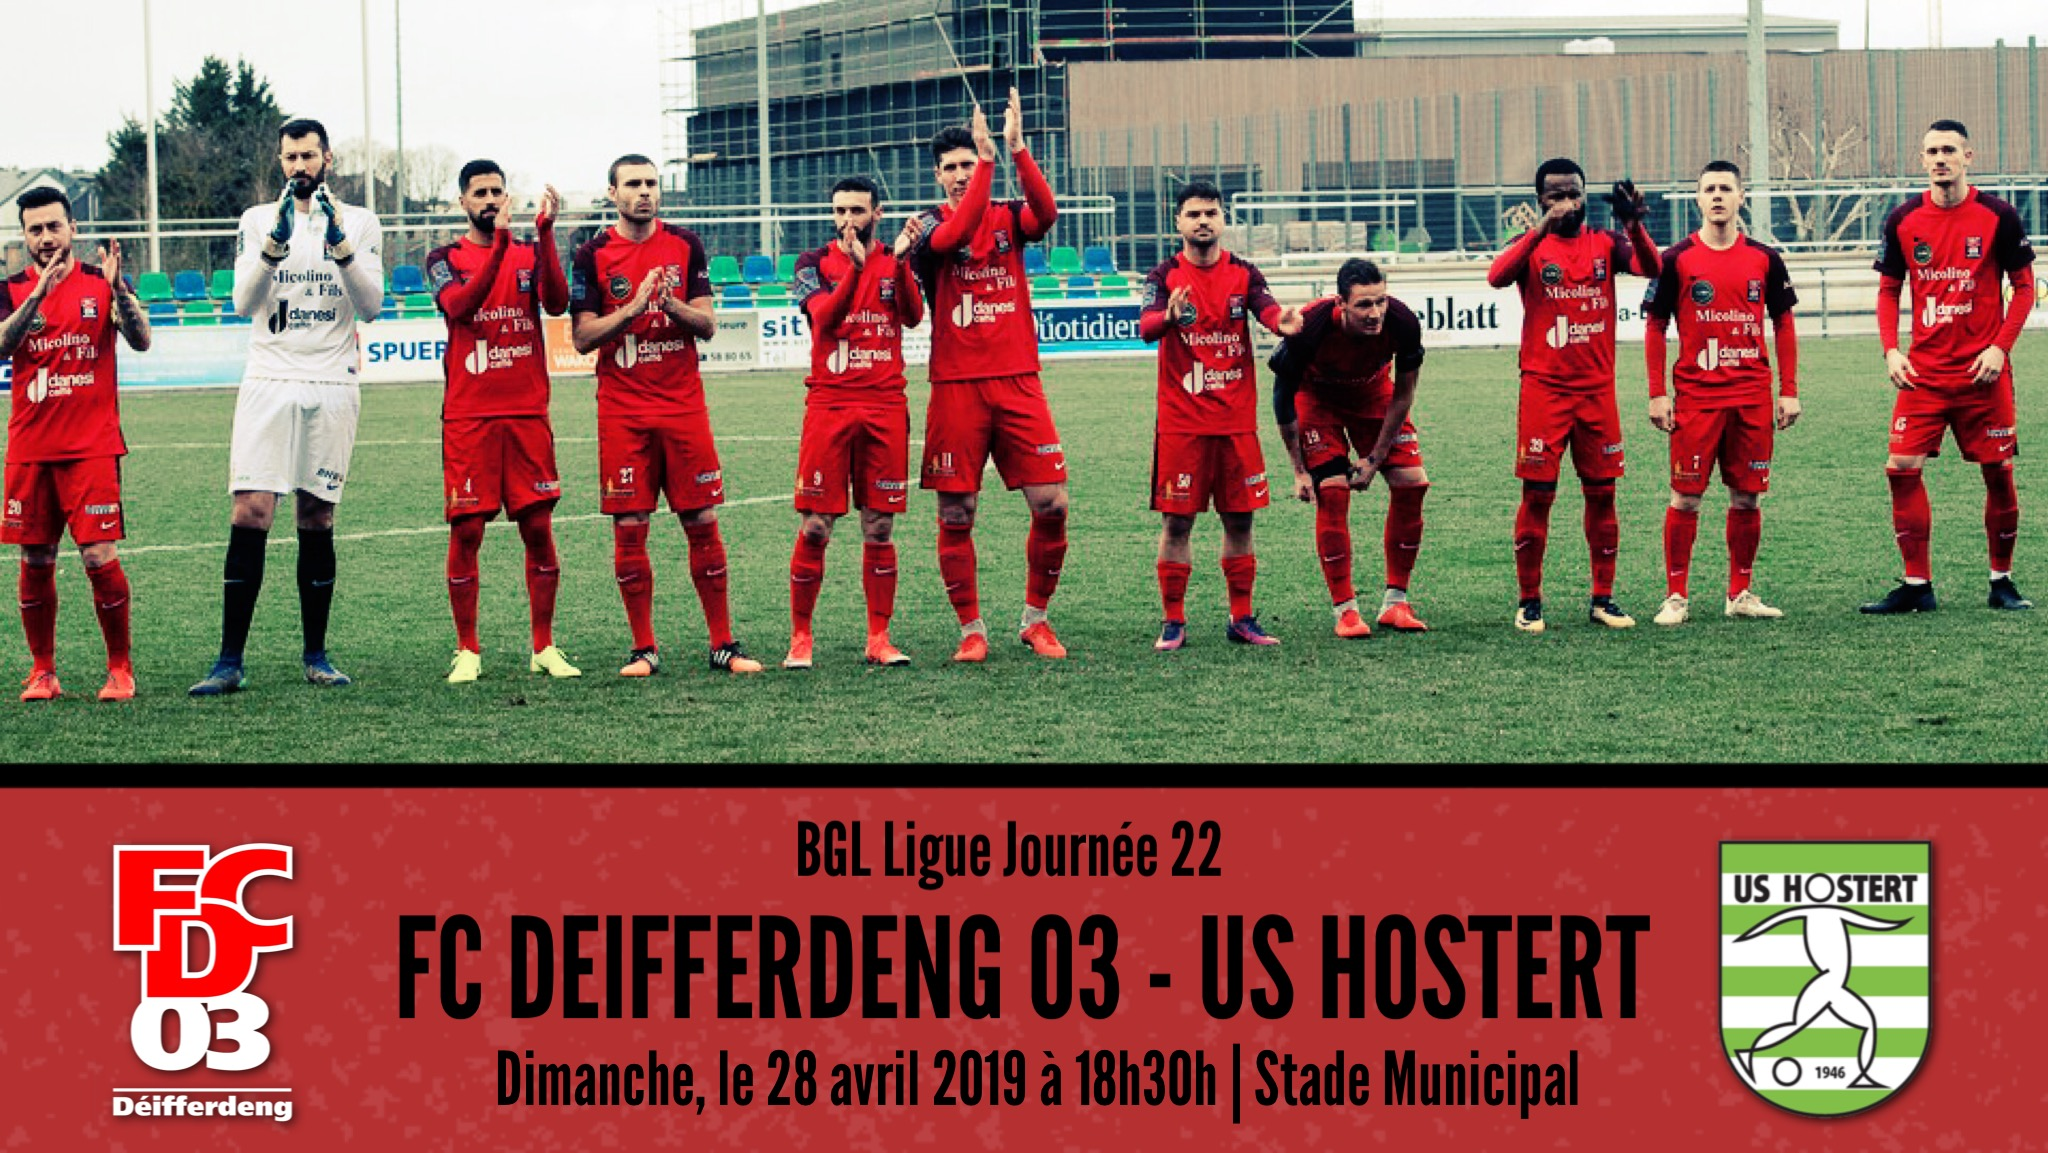 FC DEIFFERDENG 03 - US HOSTERT